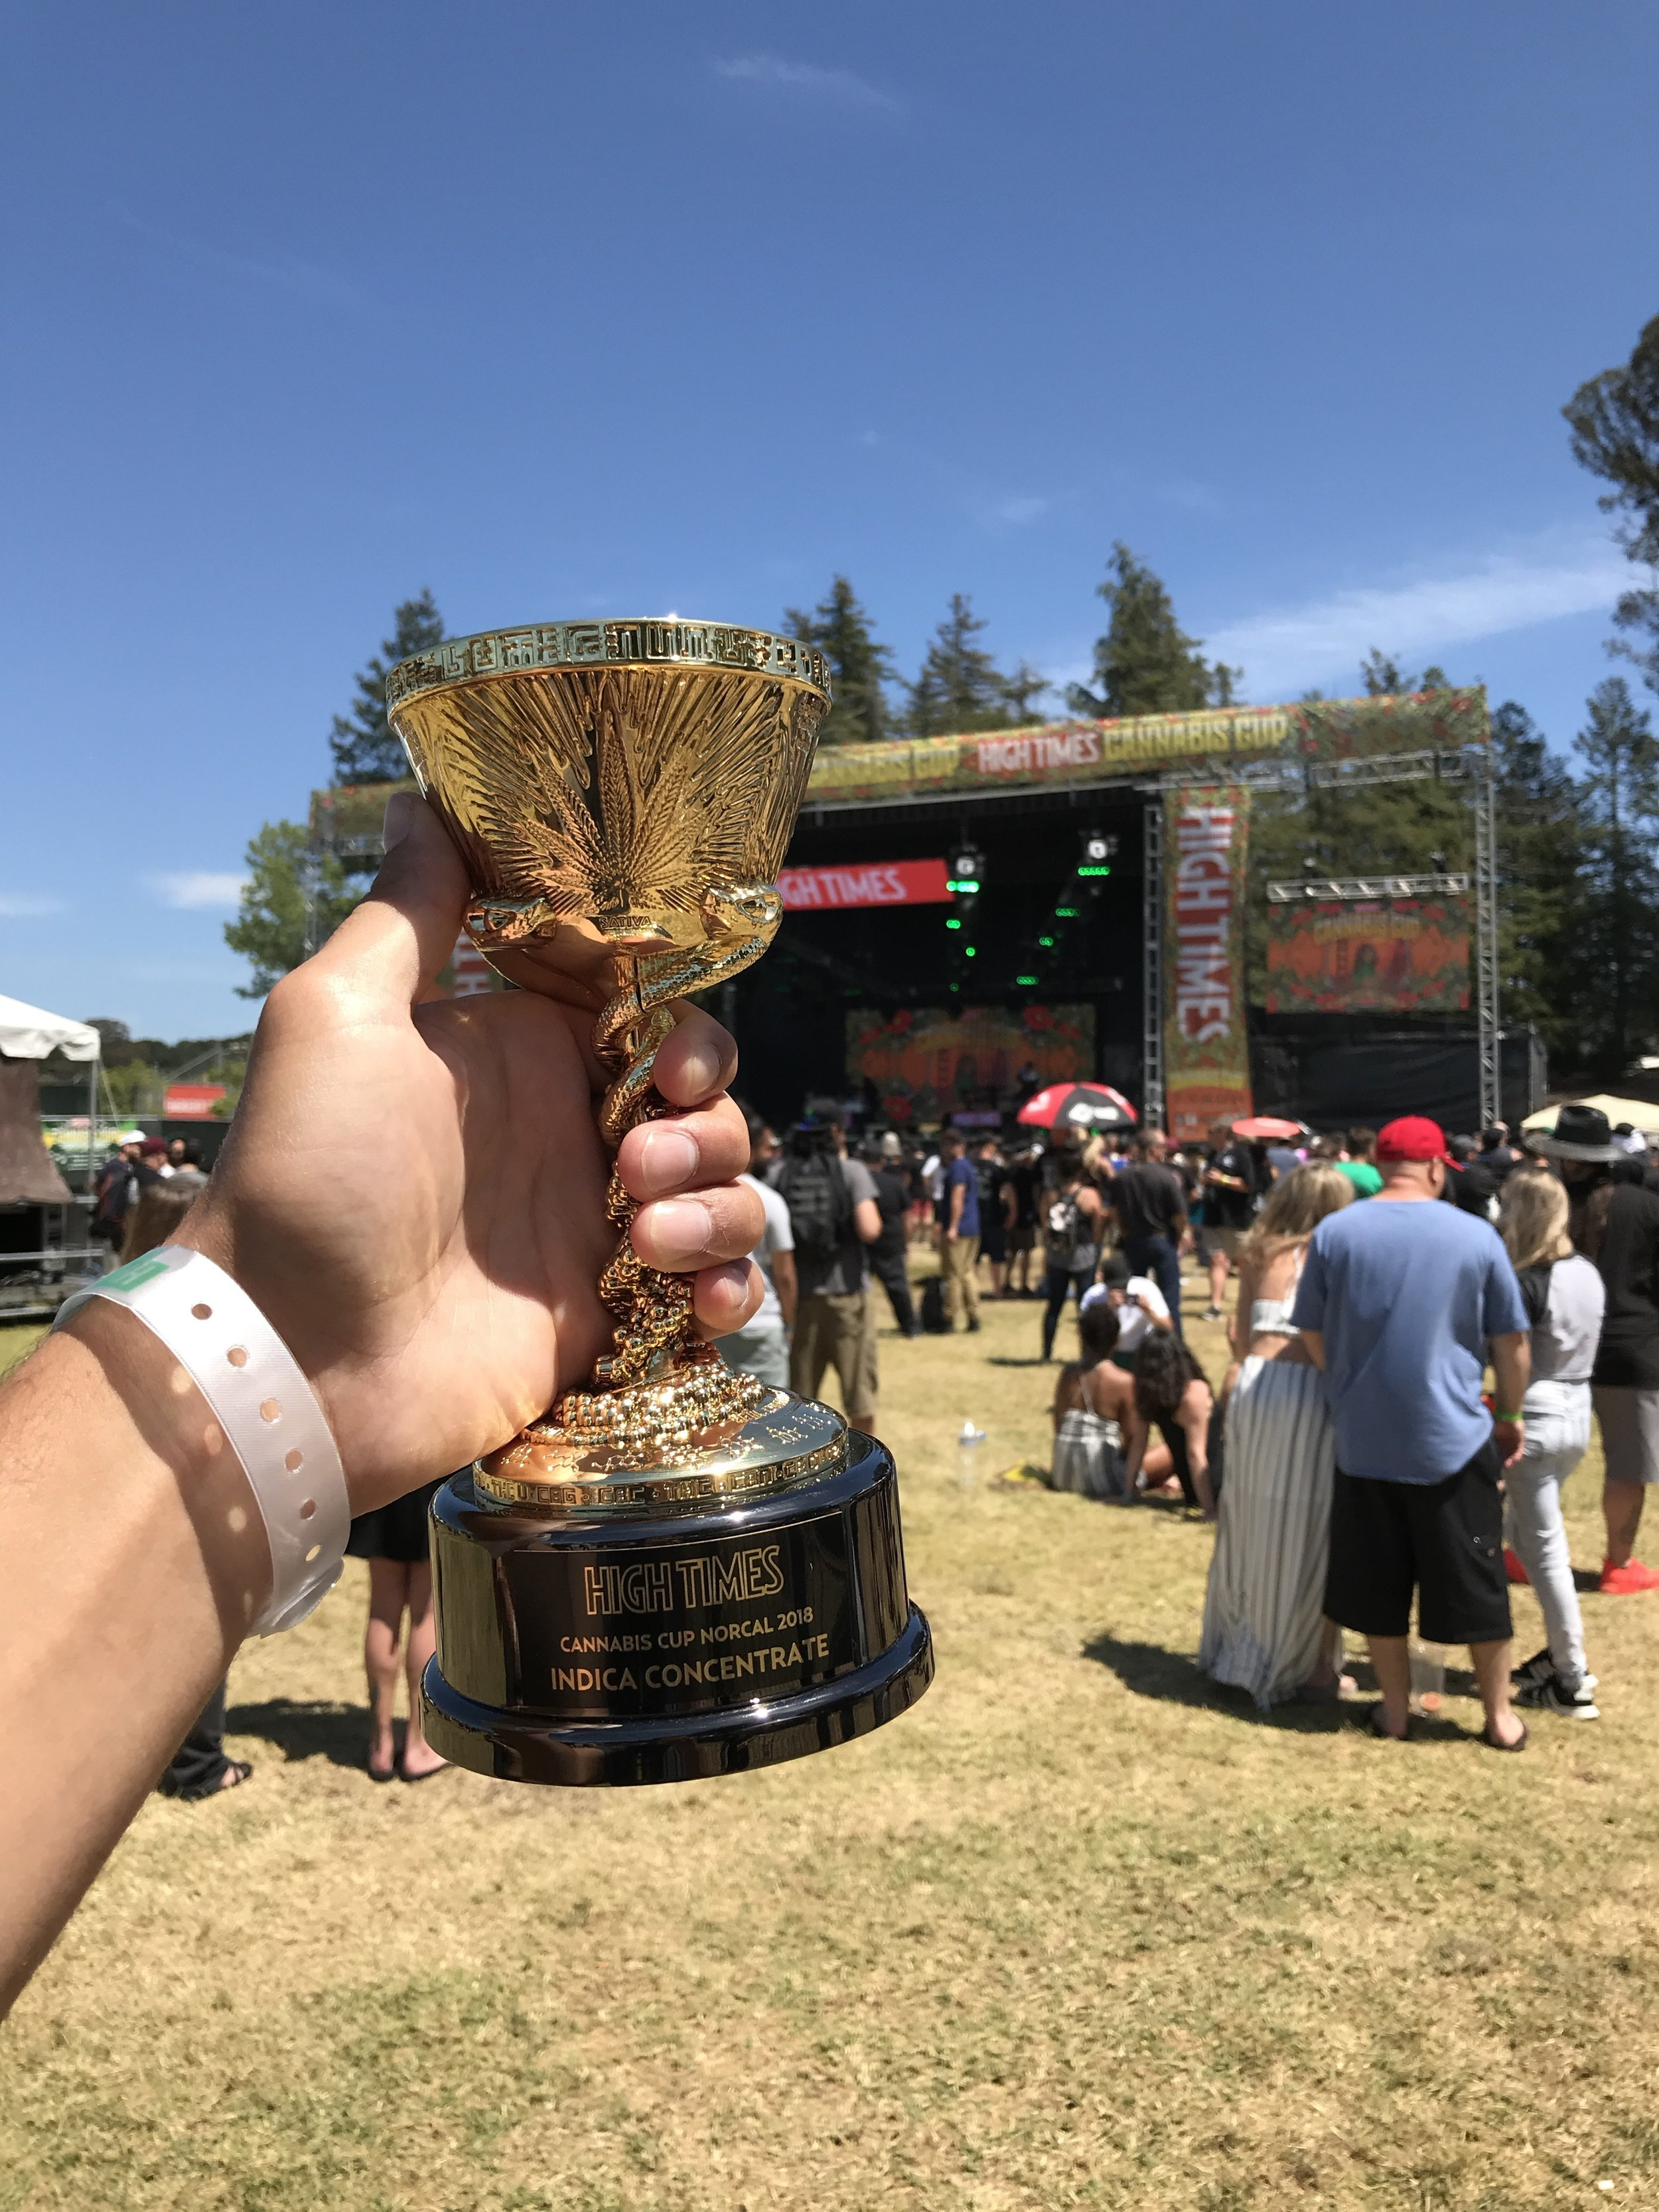 June 3rd 2018: 1st Place Indica Concentrate Norcal Hightimes Cannabis Cup